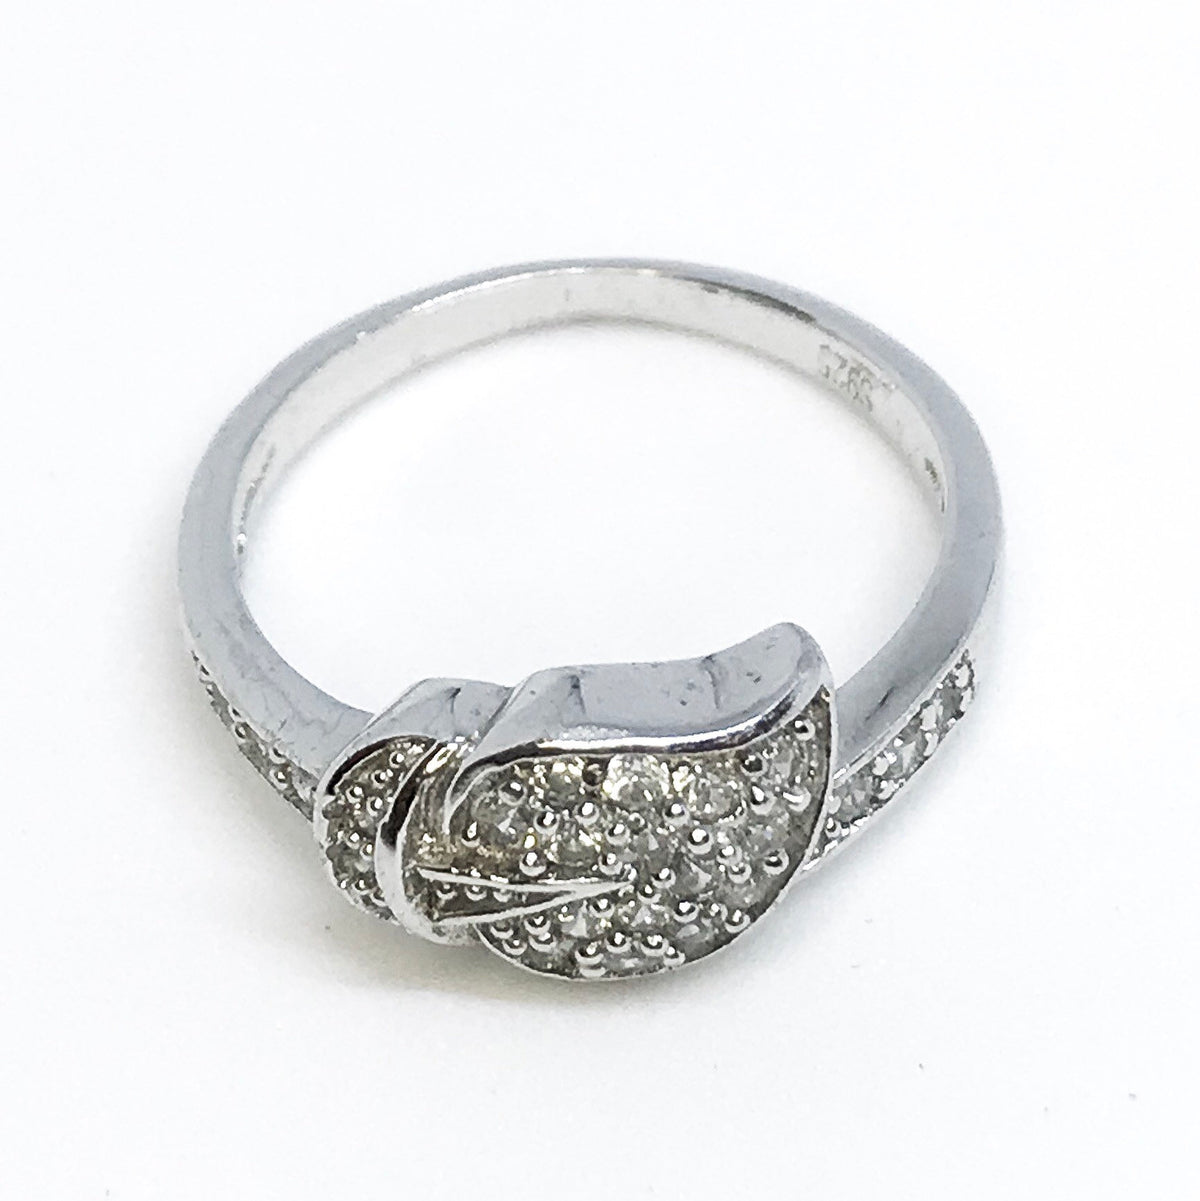 NEW 14K White Gold Layered on Sterling Silver Leaf Ring